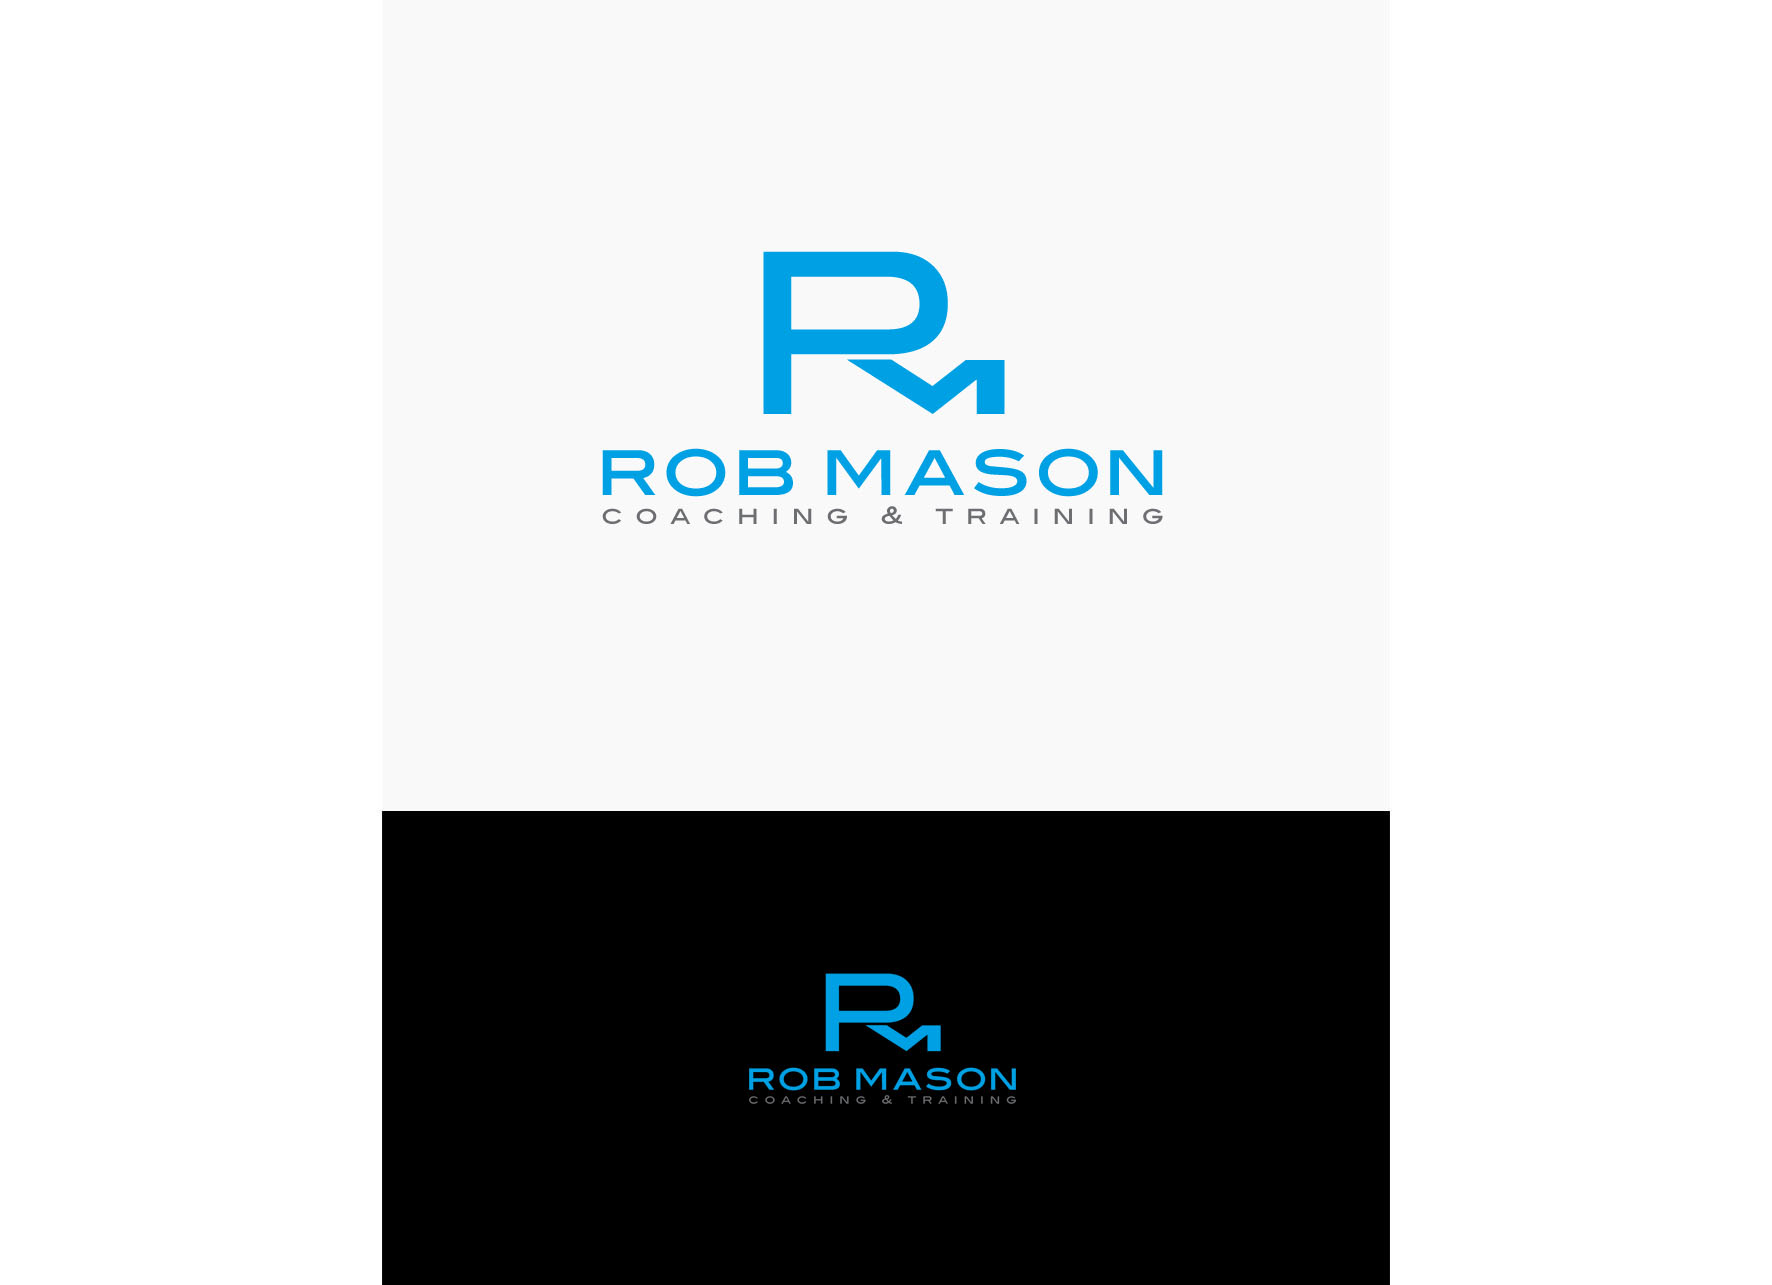 Logo Design by tanganpanas - Entry No. 127 in the Logo Design Contest New Logo Design Needed for Exciting Company Rob Mason Coaching.